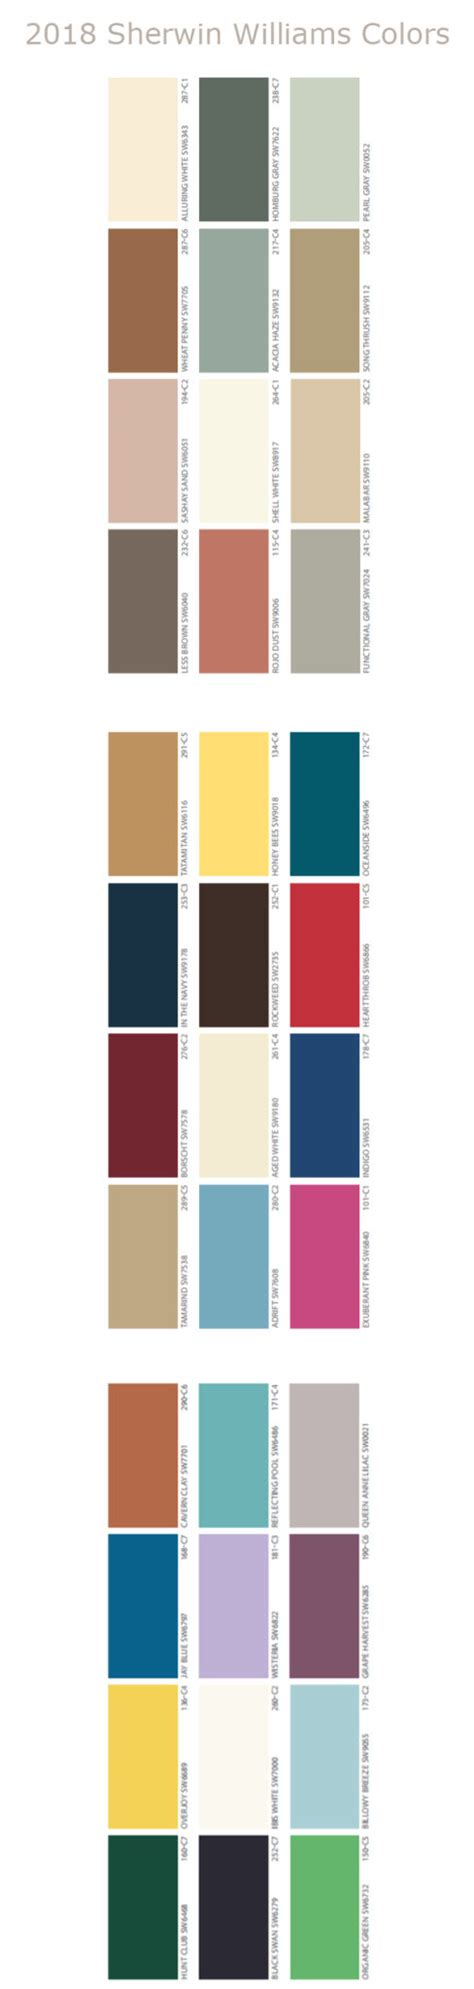 sherwin williams paint color trends 2018 interior color trends sherwin williams